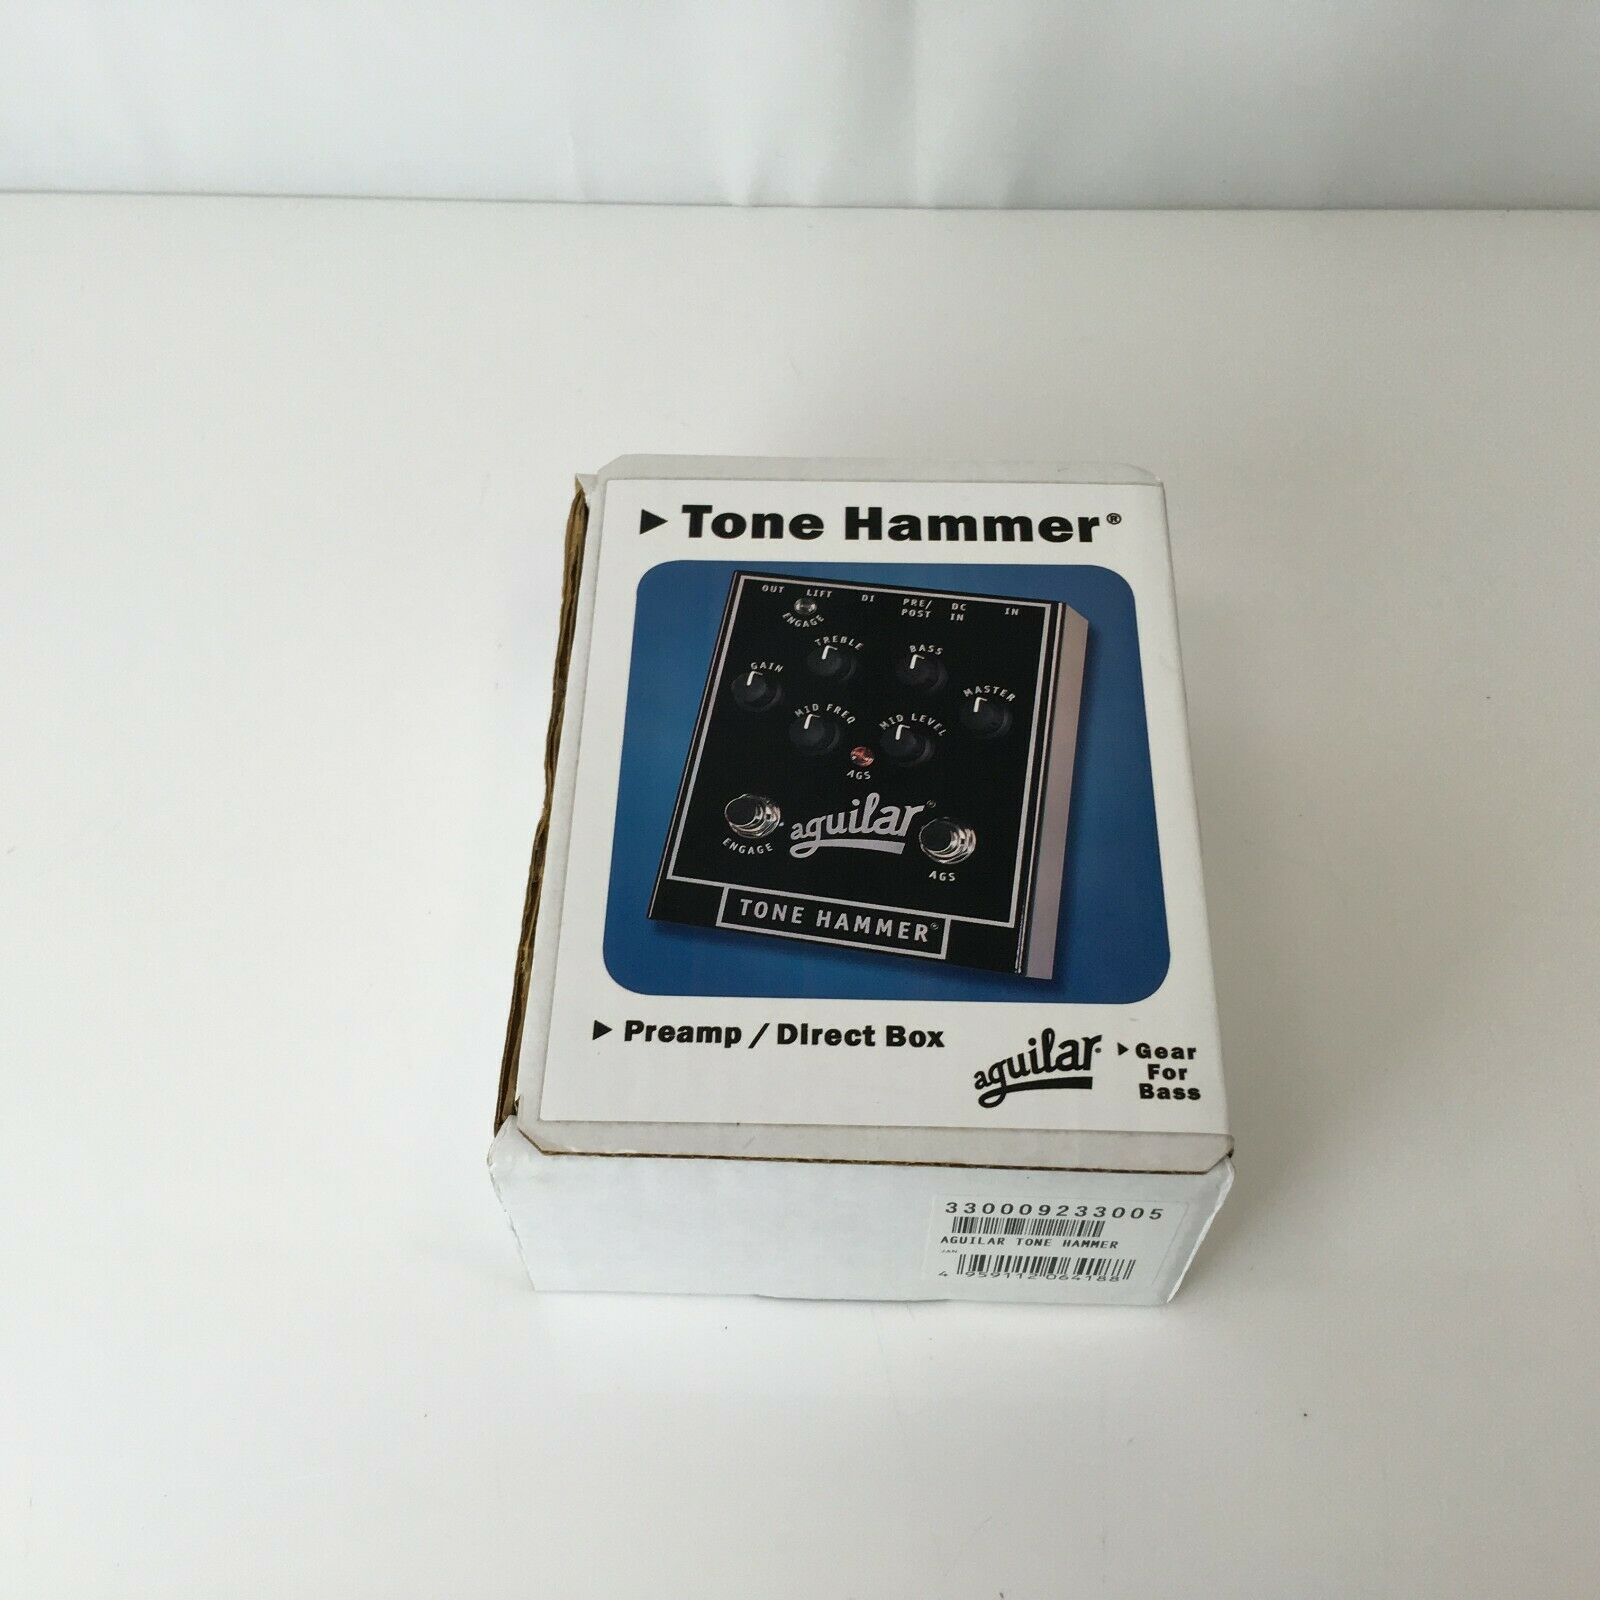 Aguilar Tone Hammer Prelamp Dlrect Box In Excellent Condition